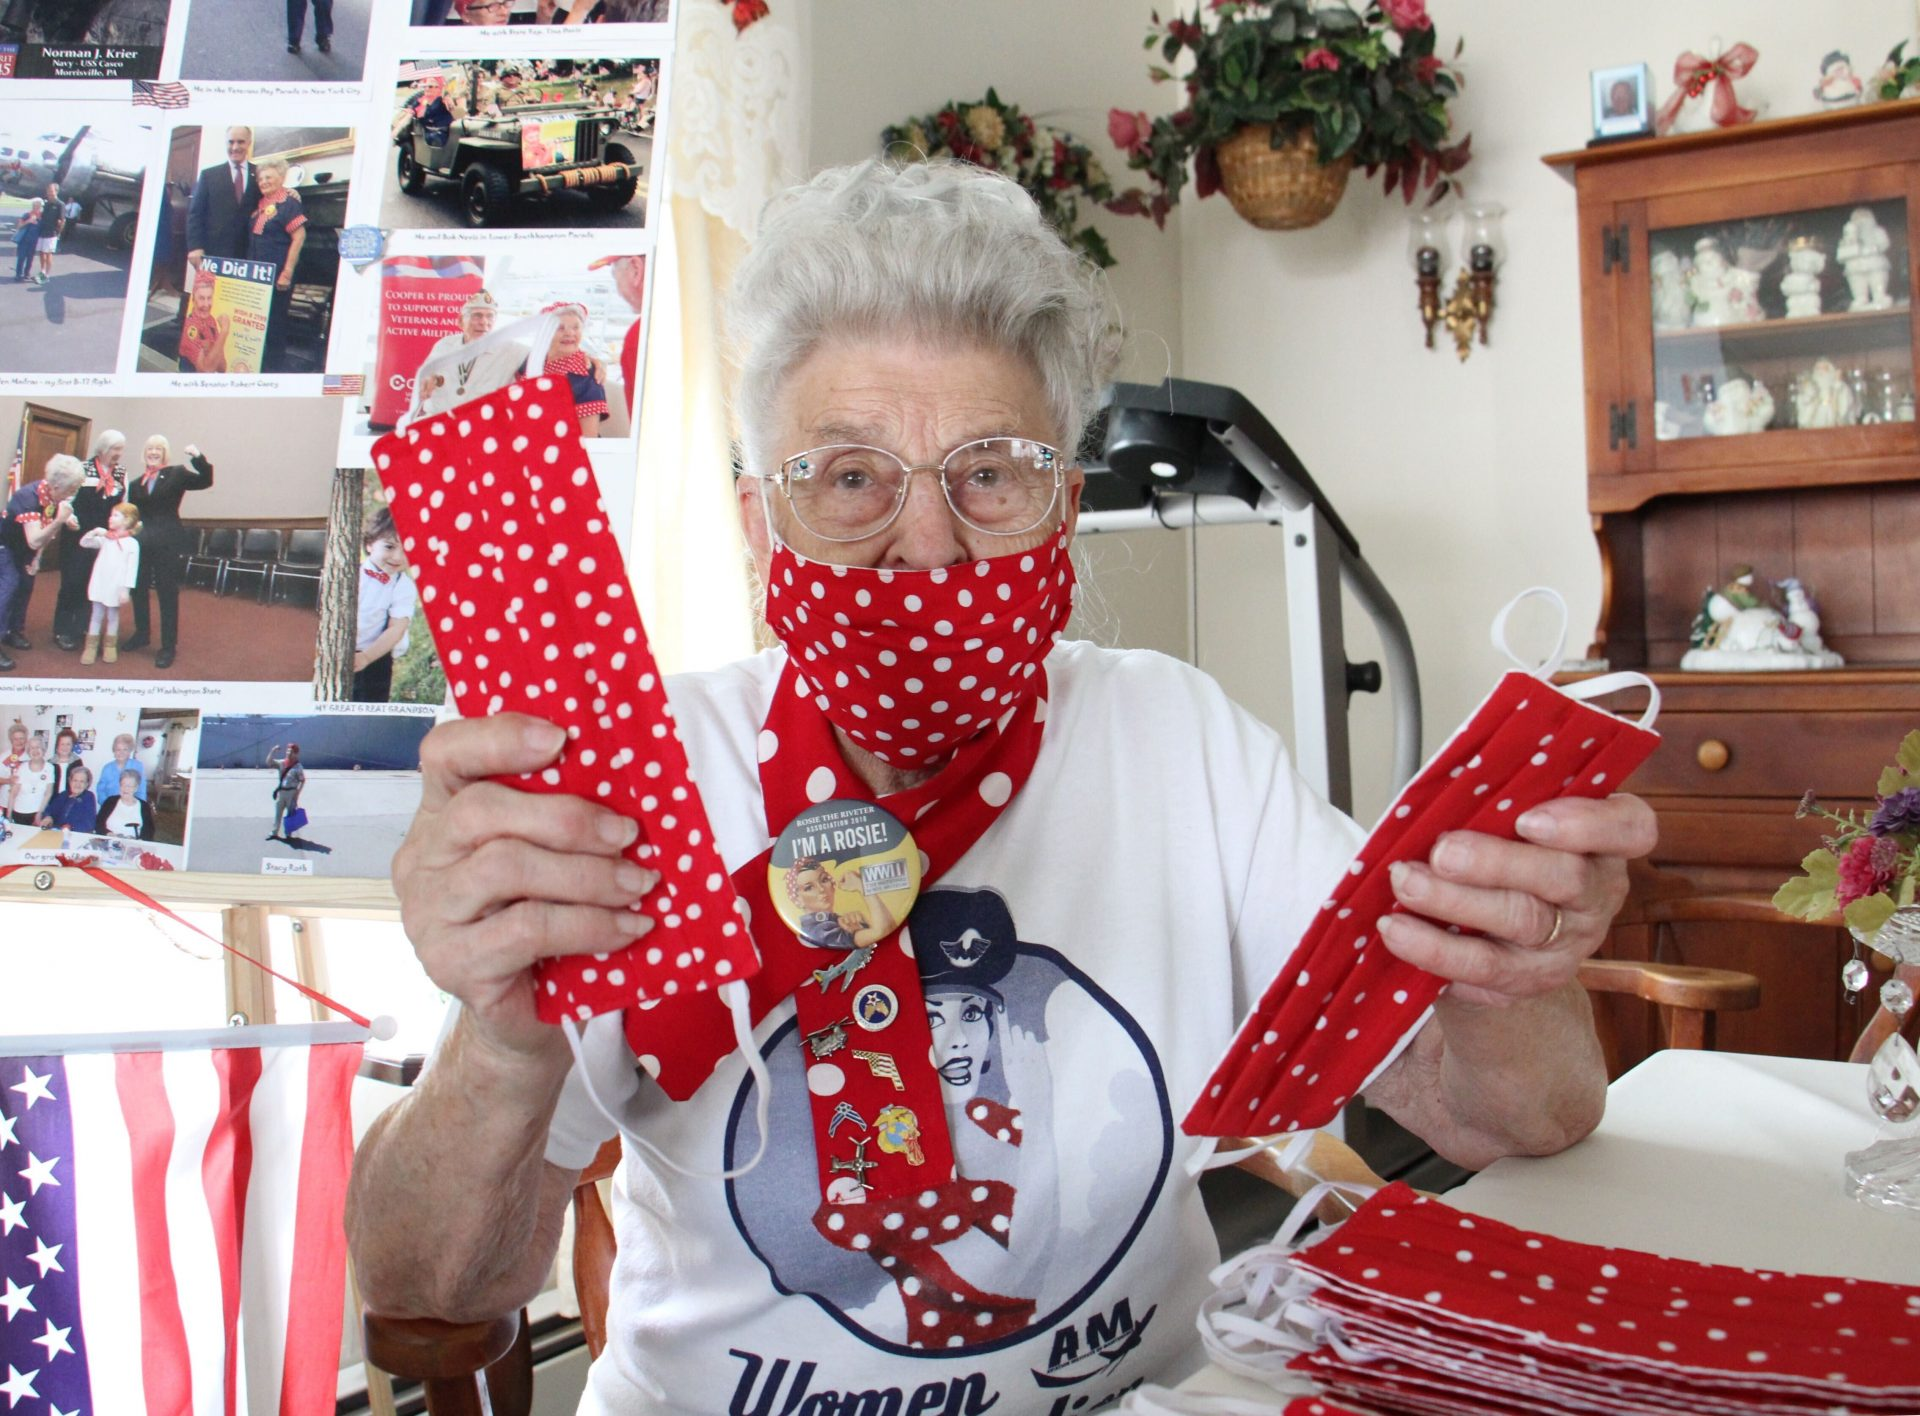 Mae Krier is busy sewing face masks in the 'Rosie the Riveter' pattern at her home in Levittown, Pa.